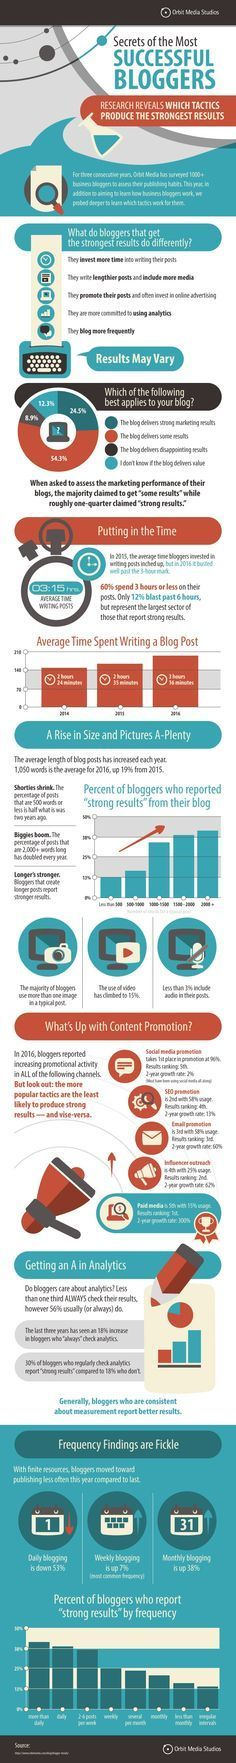 Secrets Of The Most Successful Bloggers - #infographic